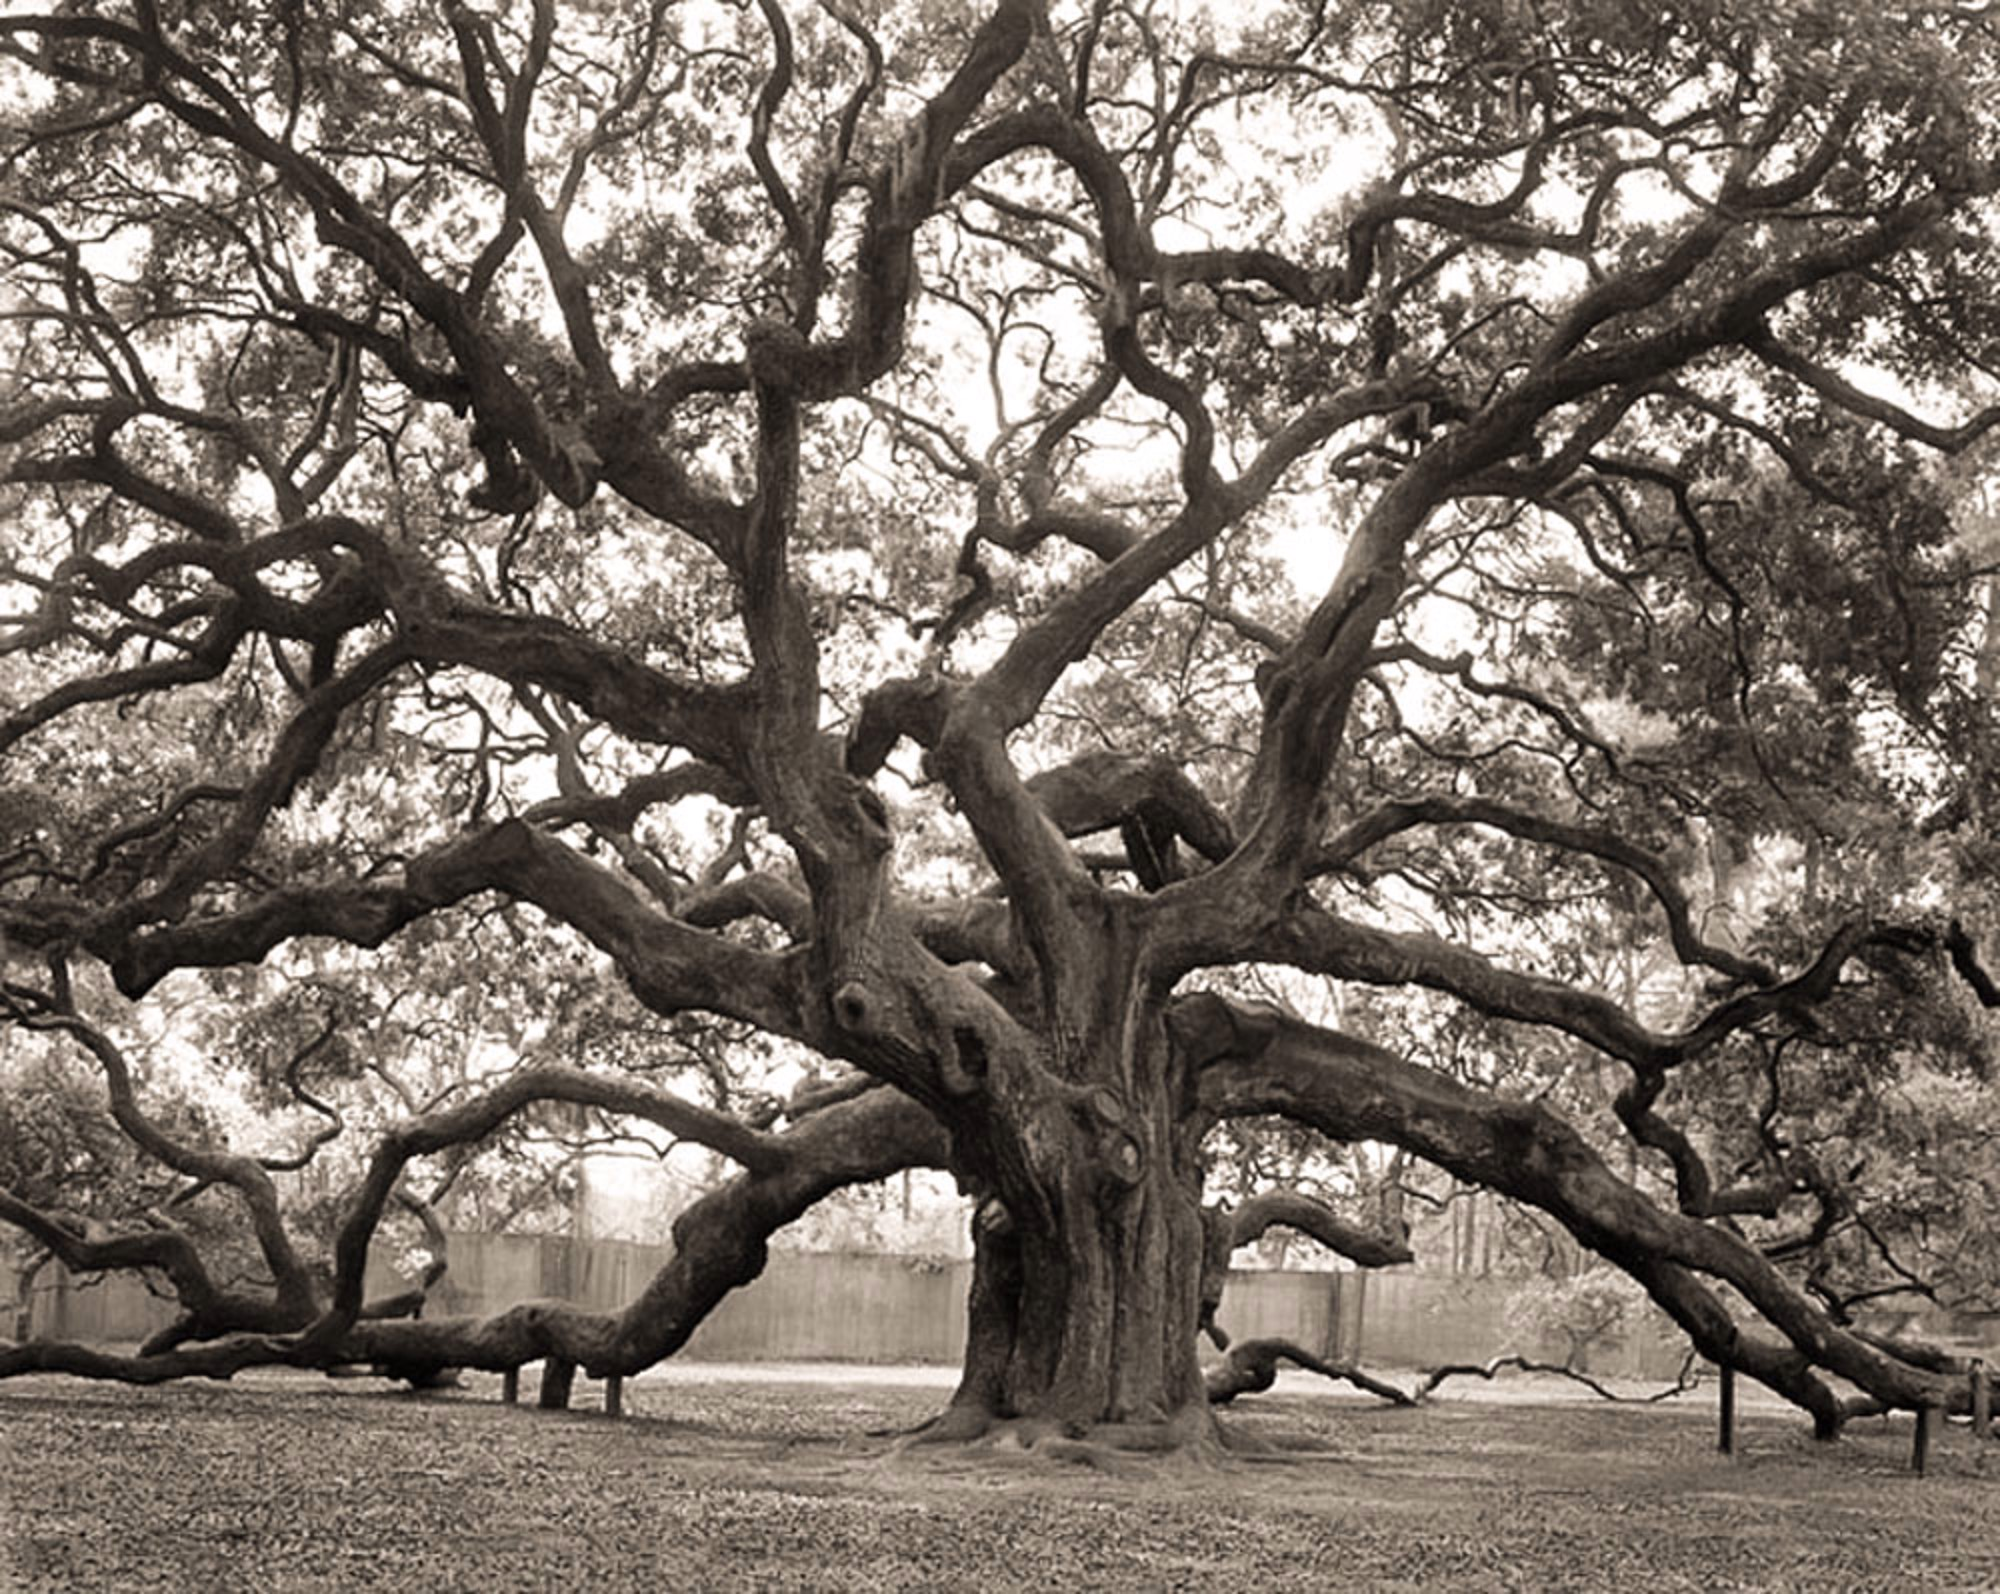 125) Angel Oak, Johns Island, South Carolina by Frank Hunter